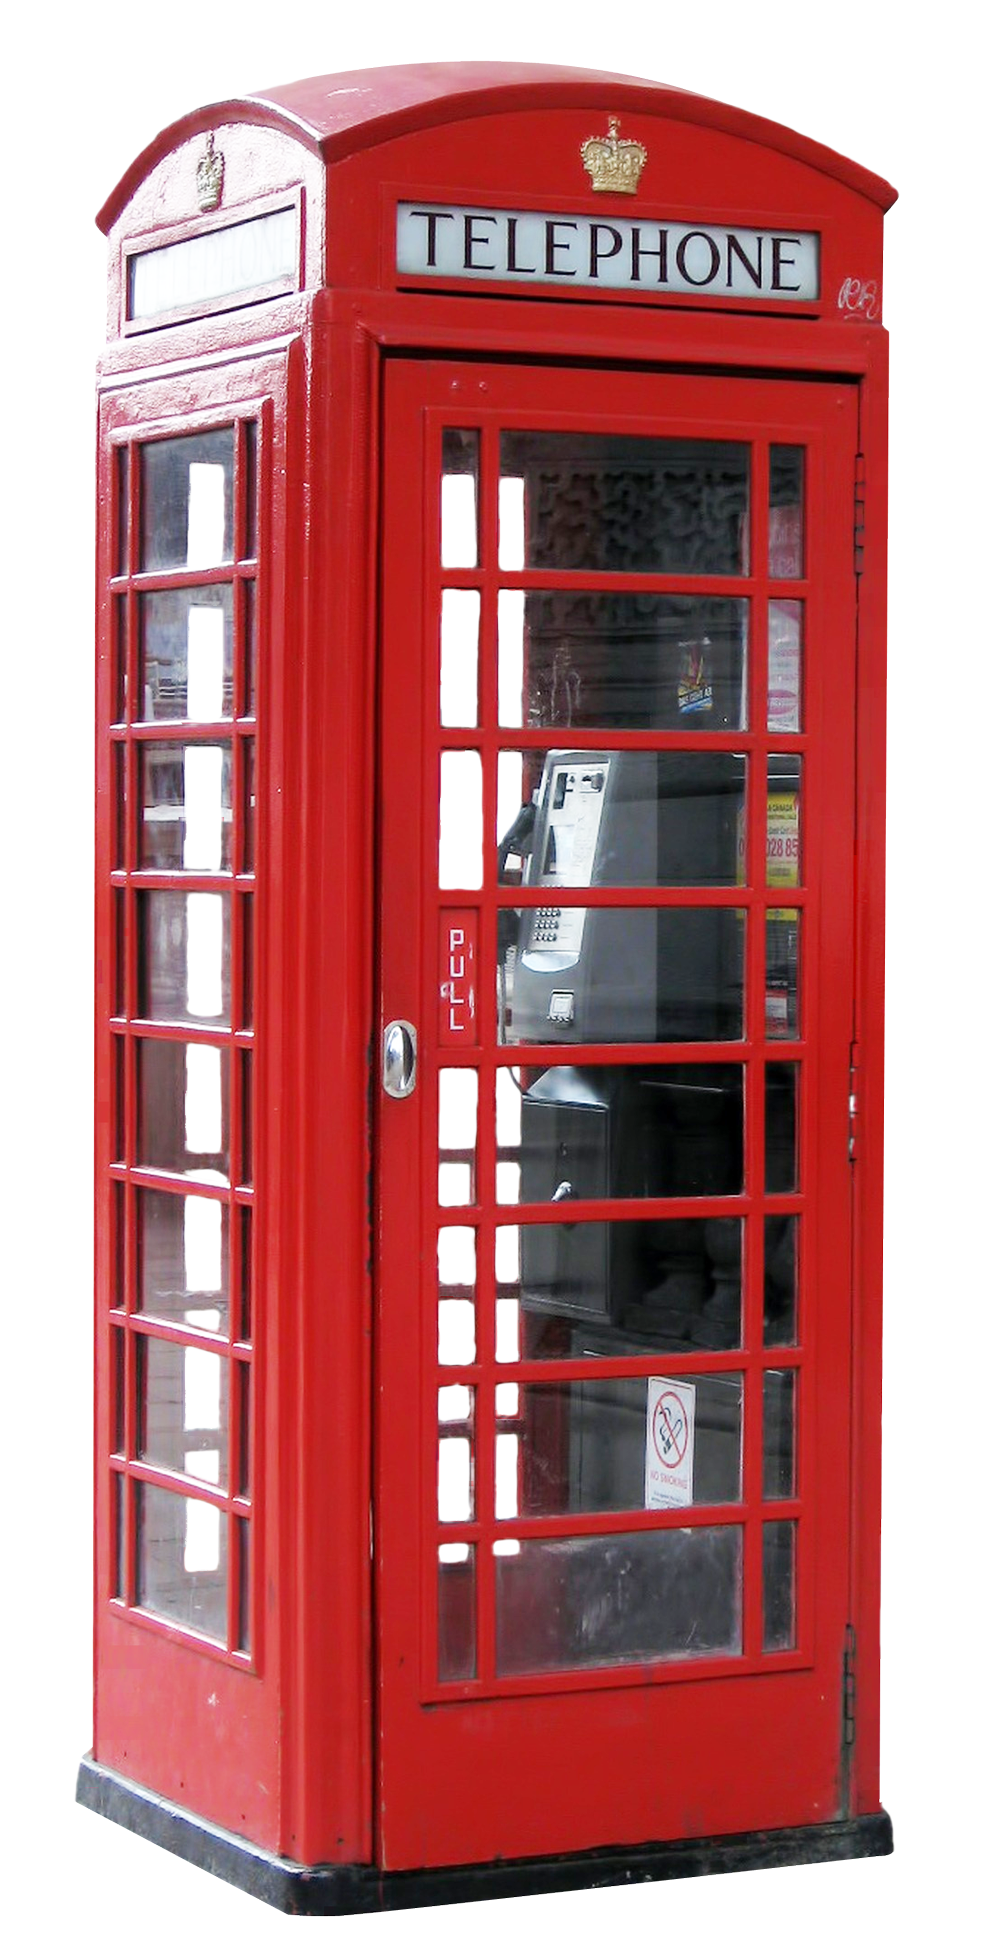 Booth clipart telephone london booth. Png image purepng free